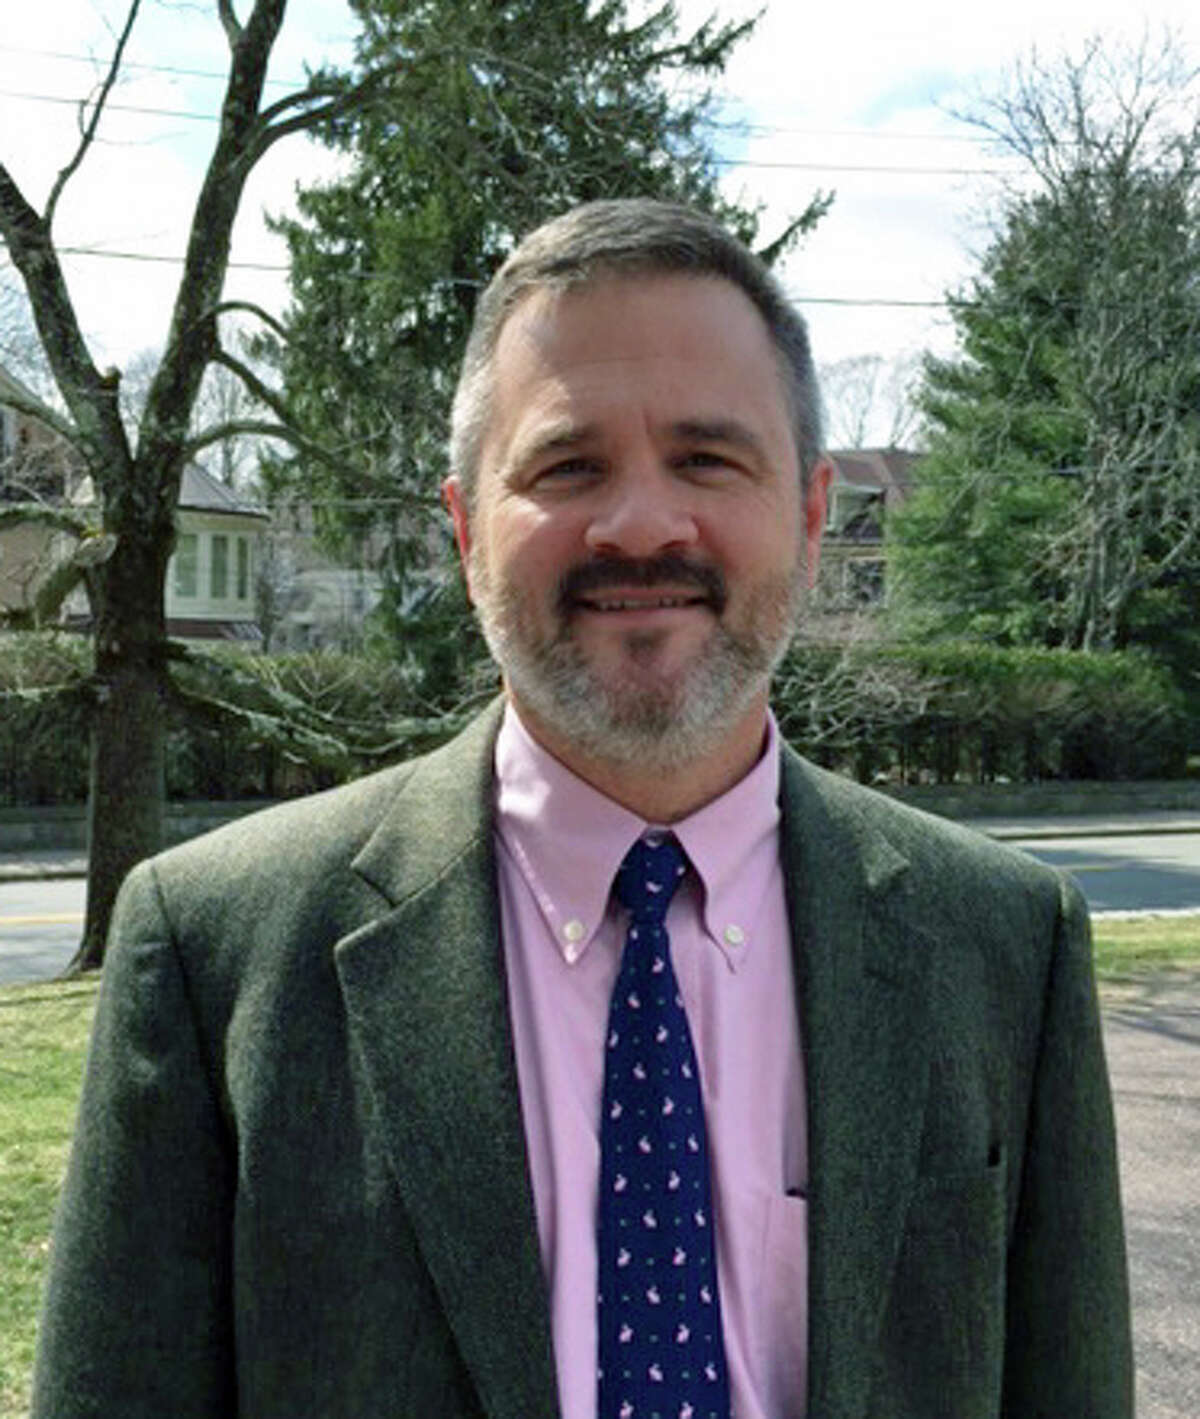 The Rev. Eric Dupee will join the Congregational Church of New Canaan as minister of Christian formation this summer.